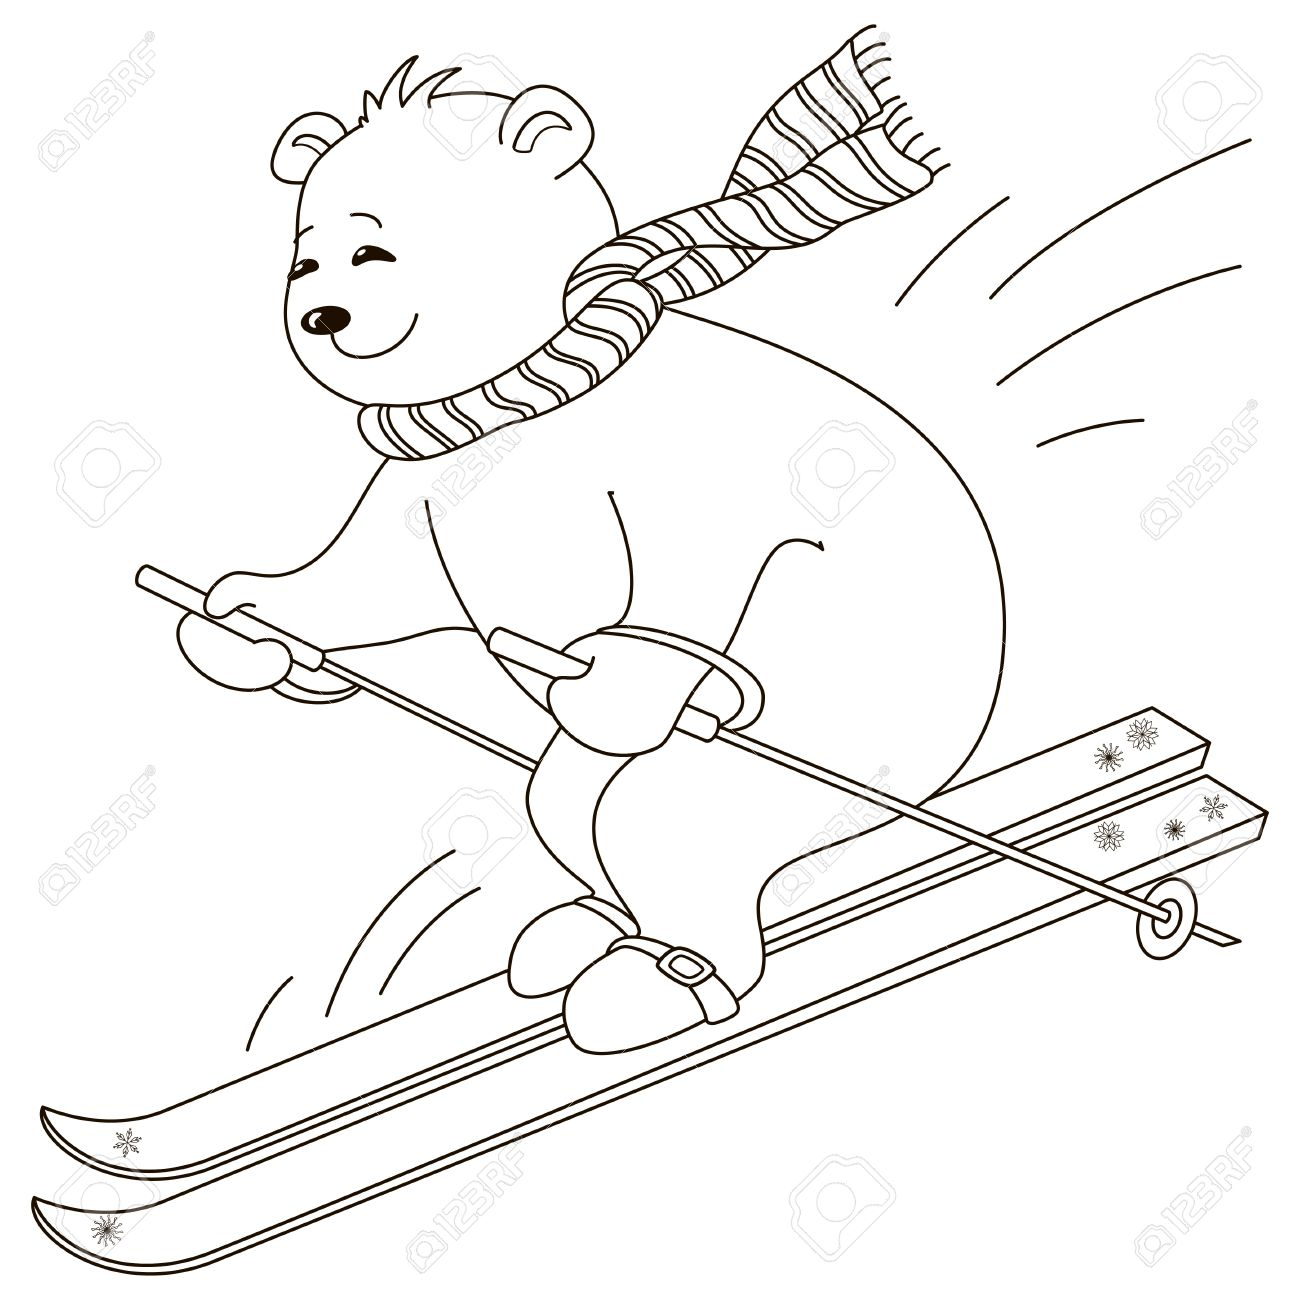 1300x1300 Teddy Bear Goes For A Drive On The Mountain Skiing, Contours